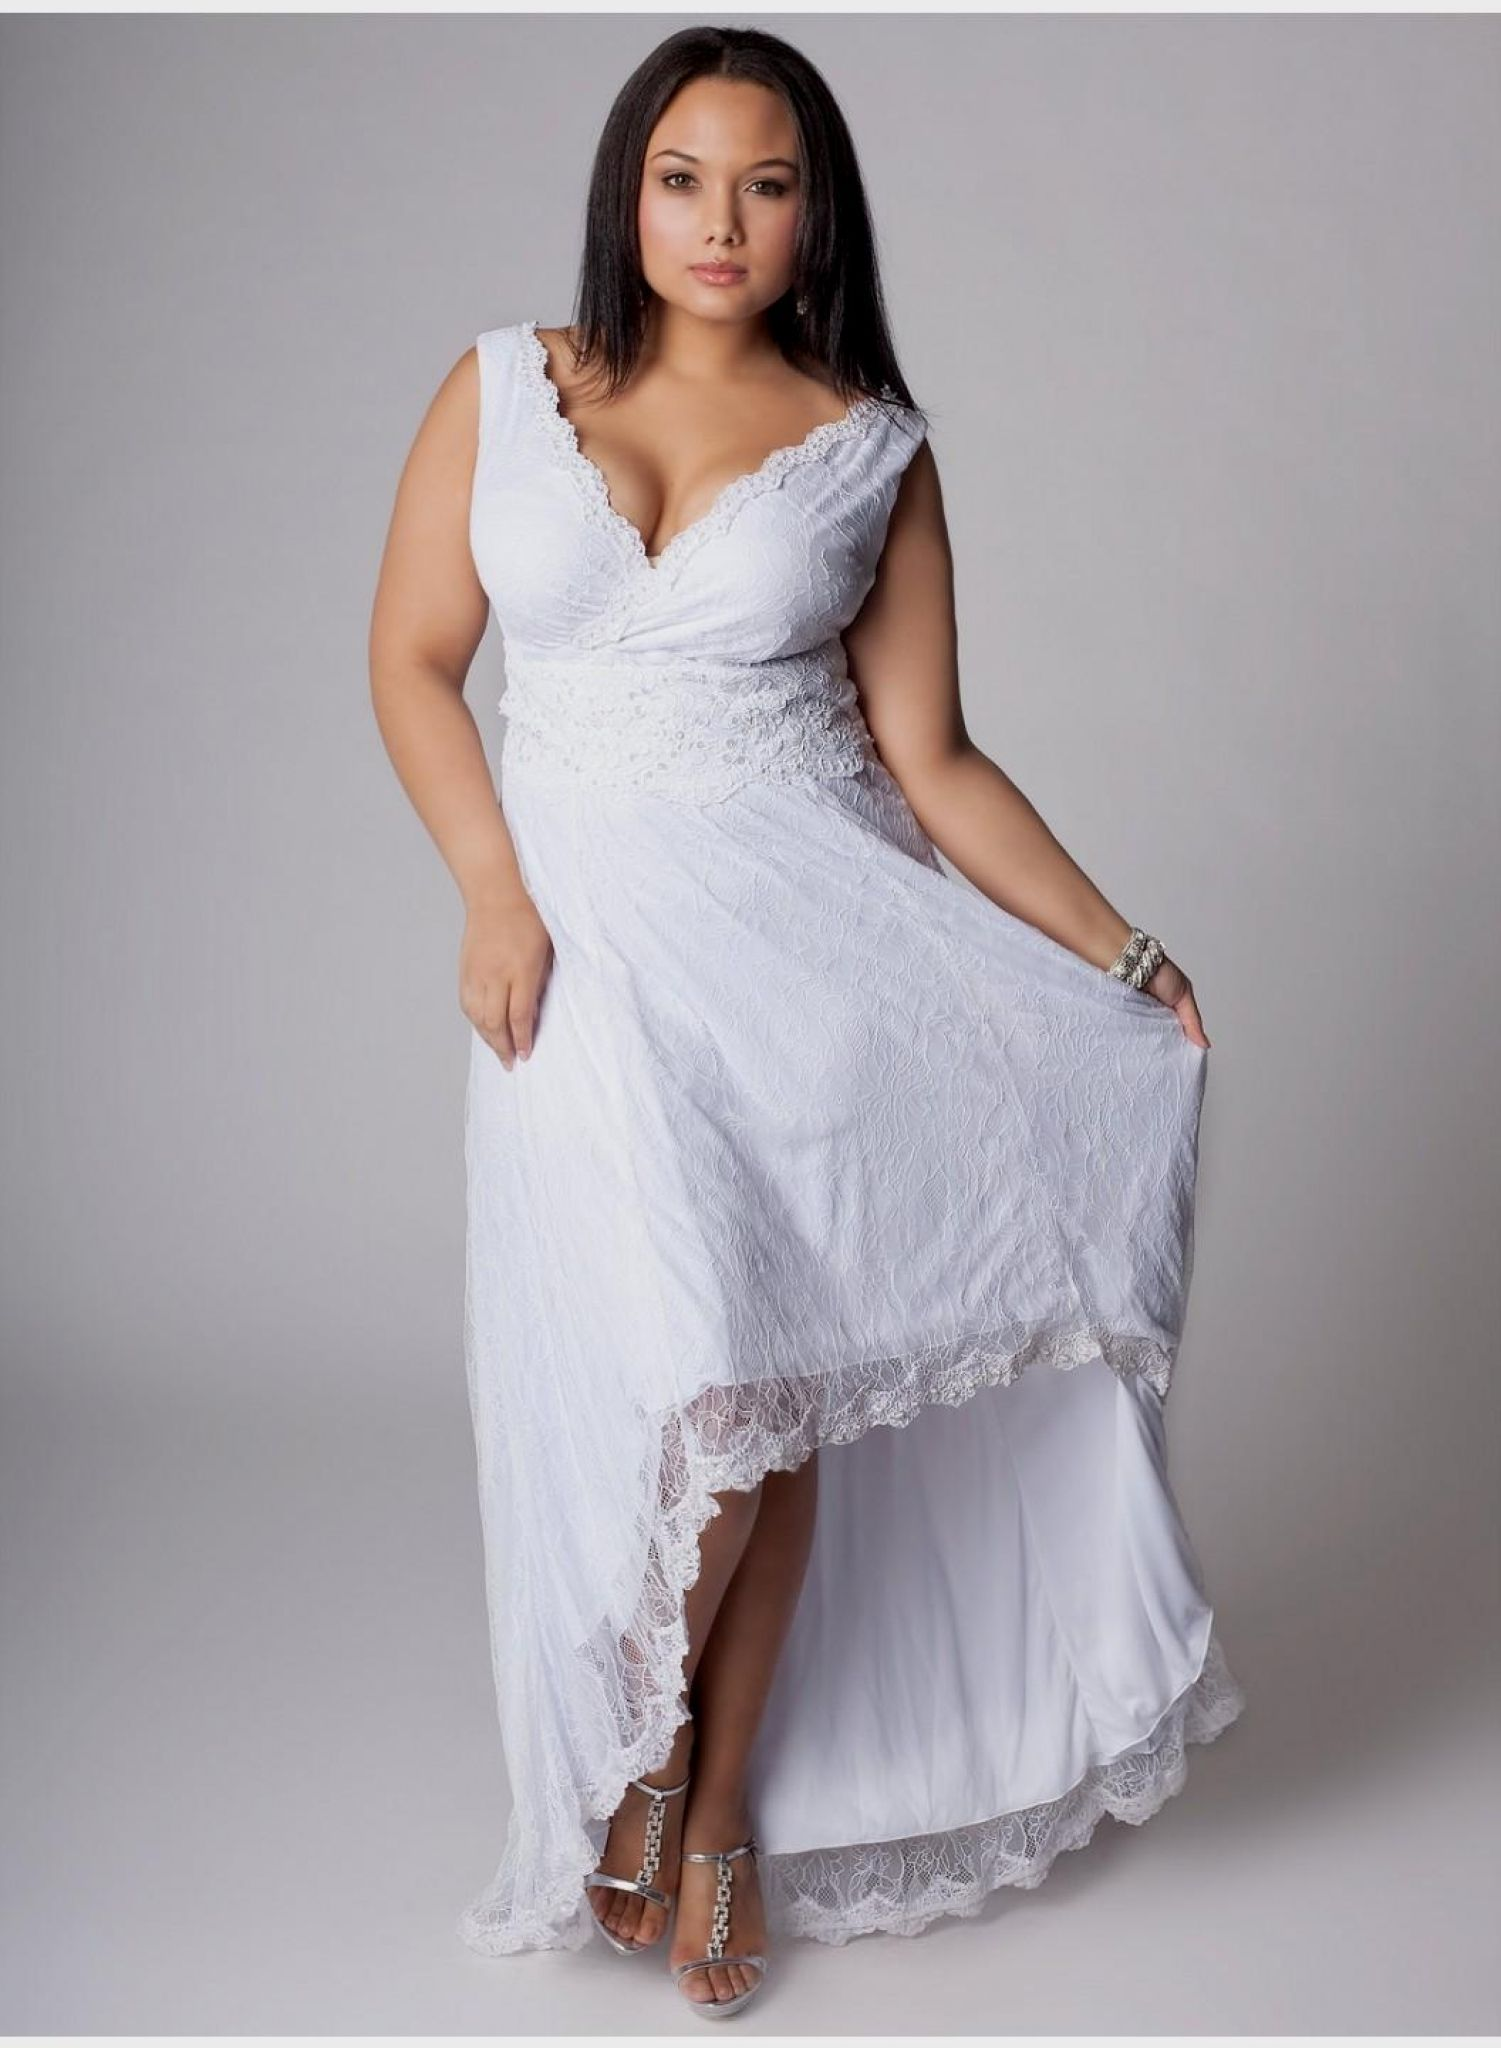 Casual wedding dresses for plus size wedding dresses for guests